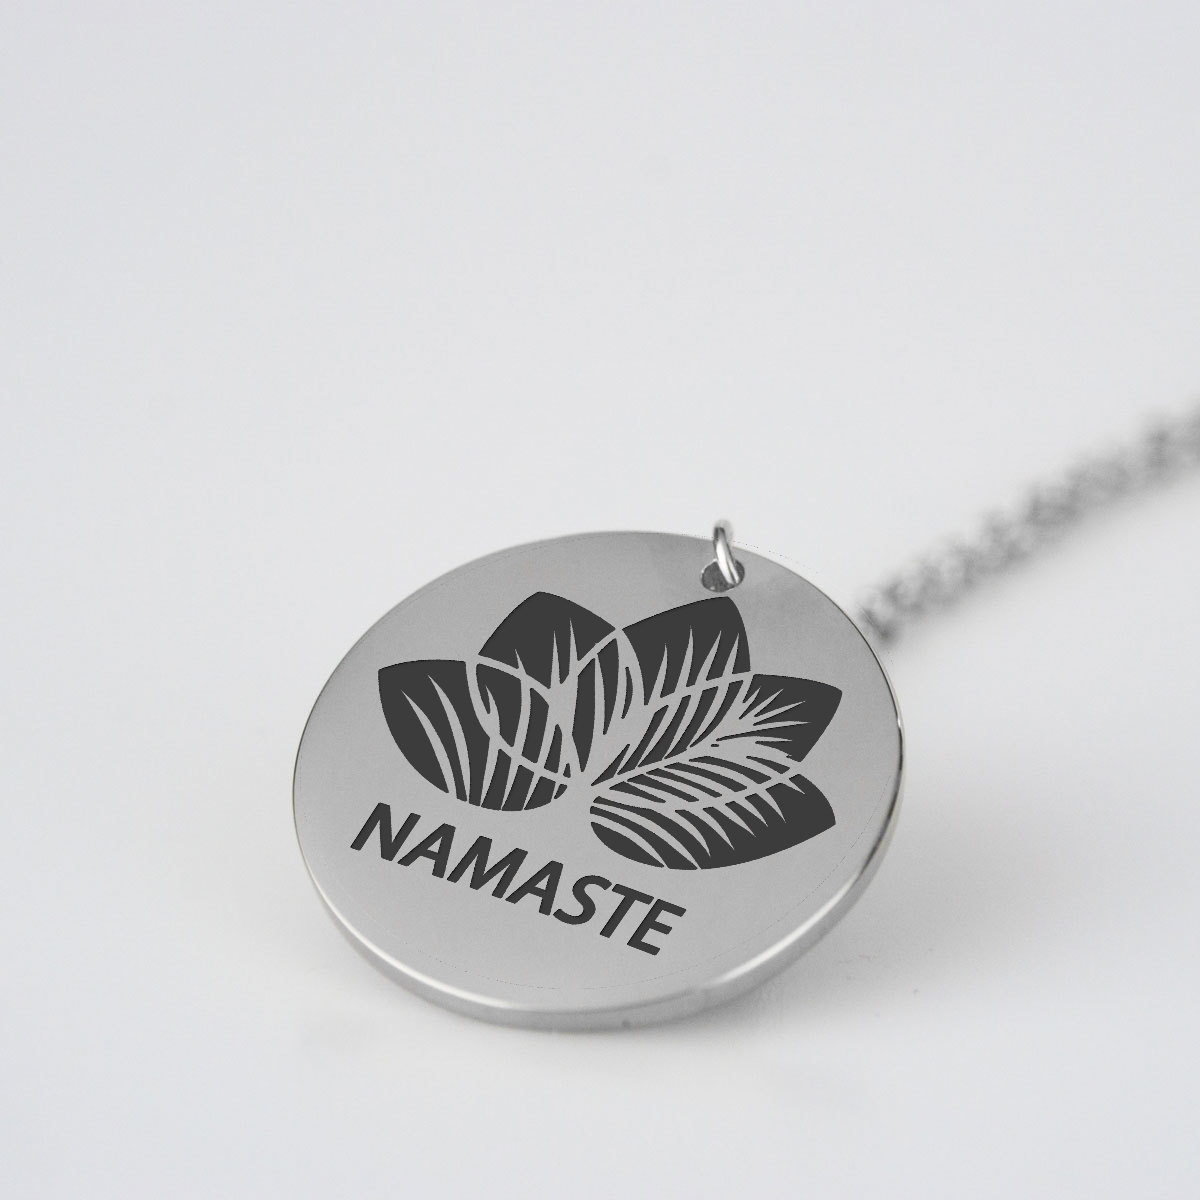 Lotus yoga beach laser engraved pendant necklace beeoux shop lotus yoga beach laser engraved pendant necklace aloadofball Gallery